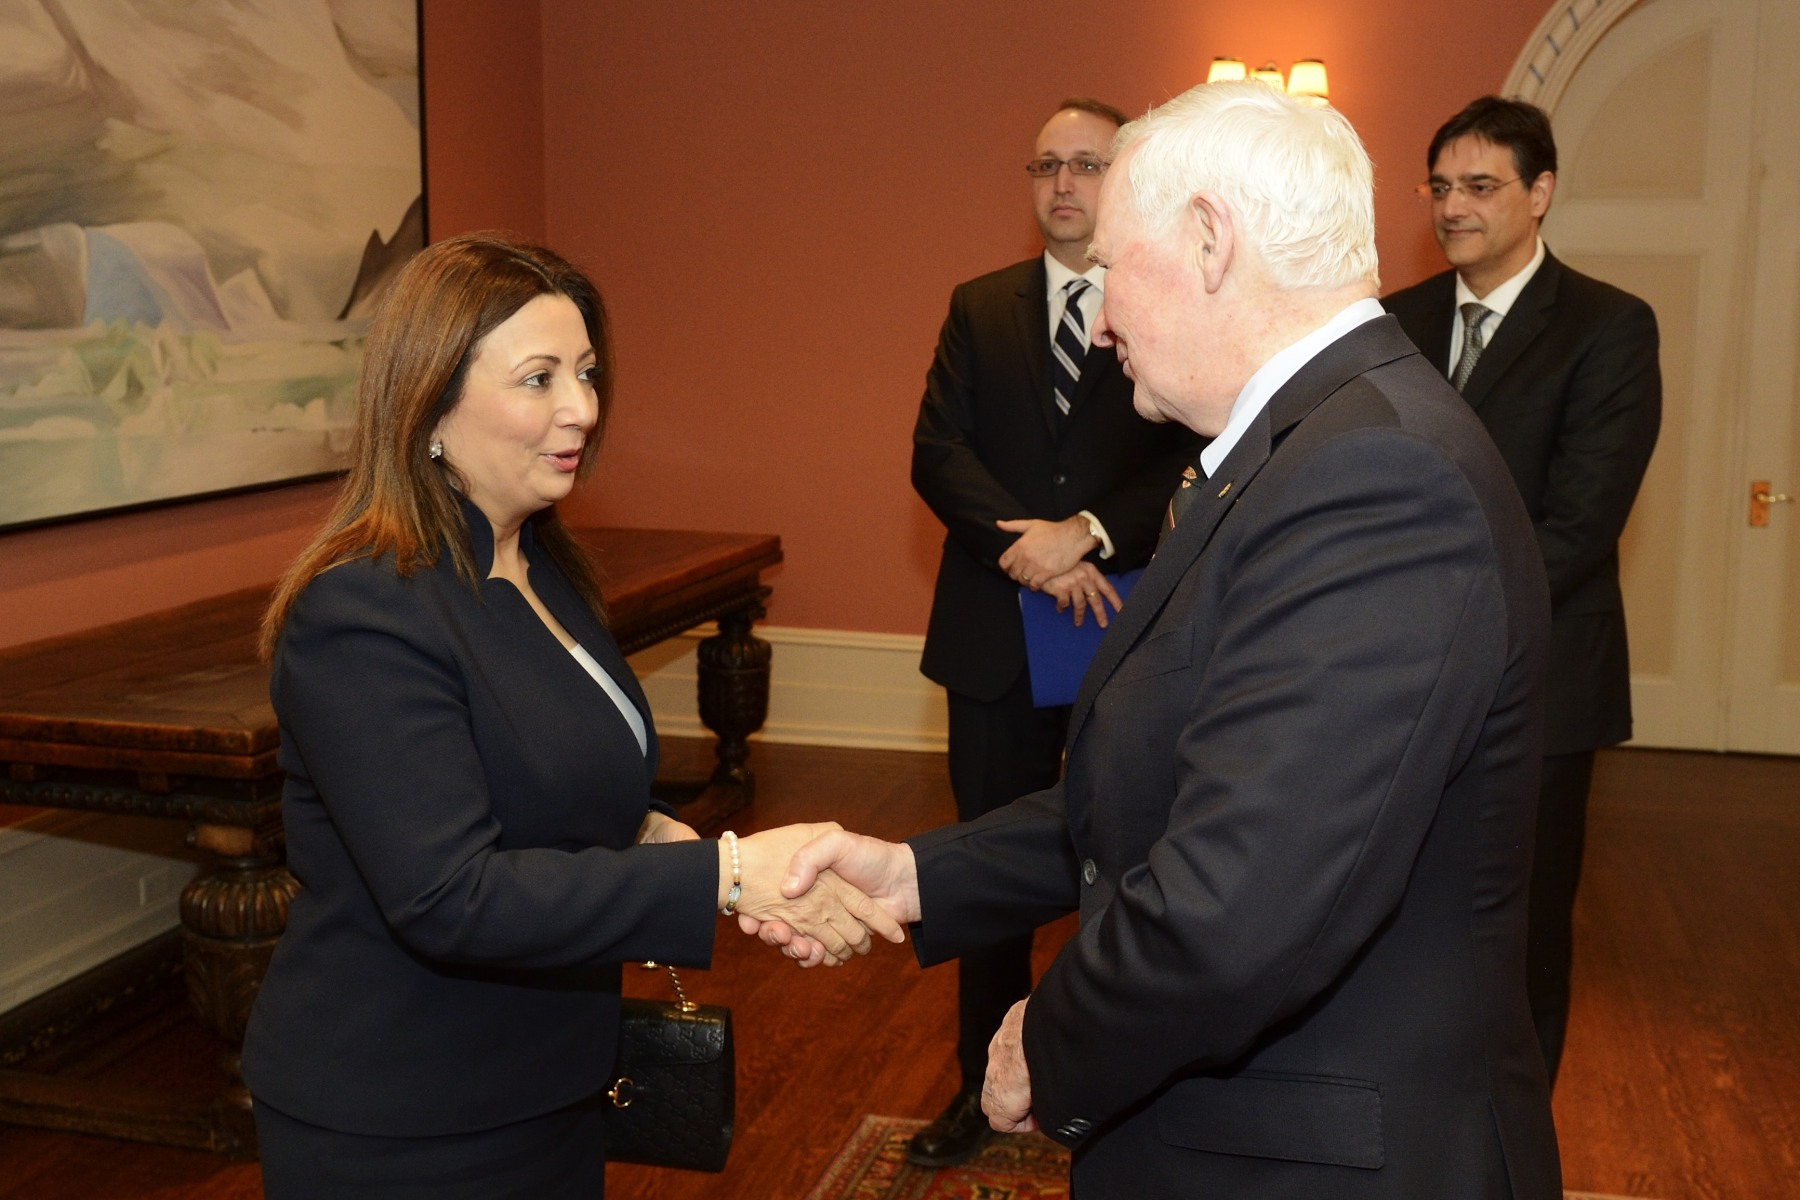 His Excellency the Right Honourable David Johnston, Governor General of Canada, met with the Tunisian National Dialogue Quartet at Rideau Hall on May 17, 2016. He greeted Mrs. Ouided Bouchamaou, President of the Tunisian Confederation of Industry, Trade and Handicrafts.